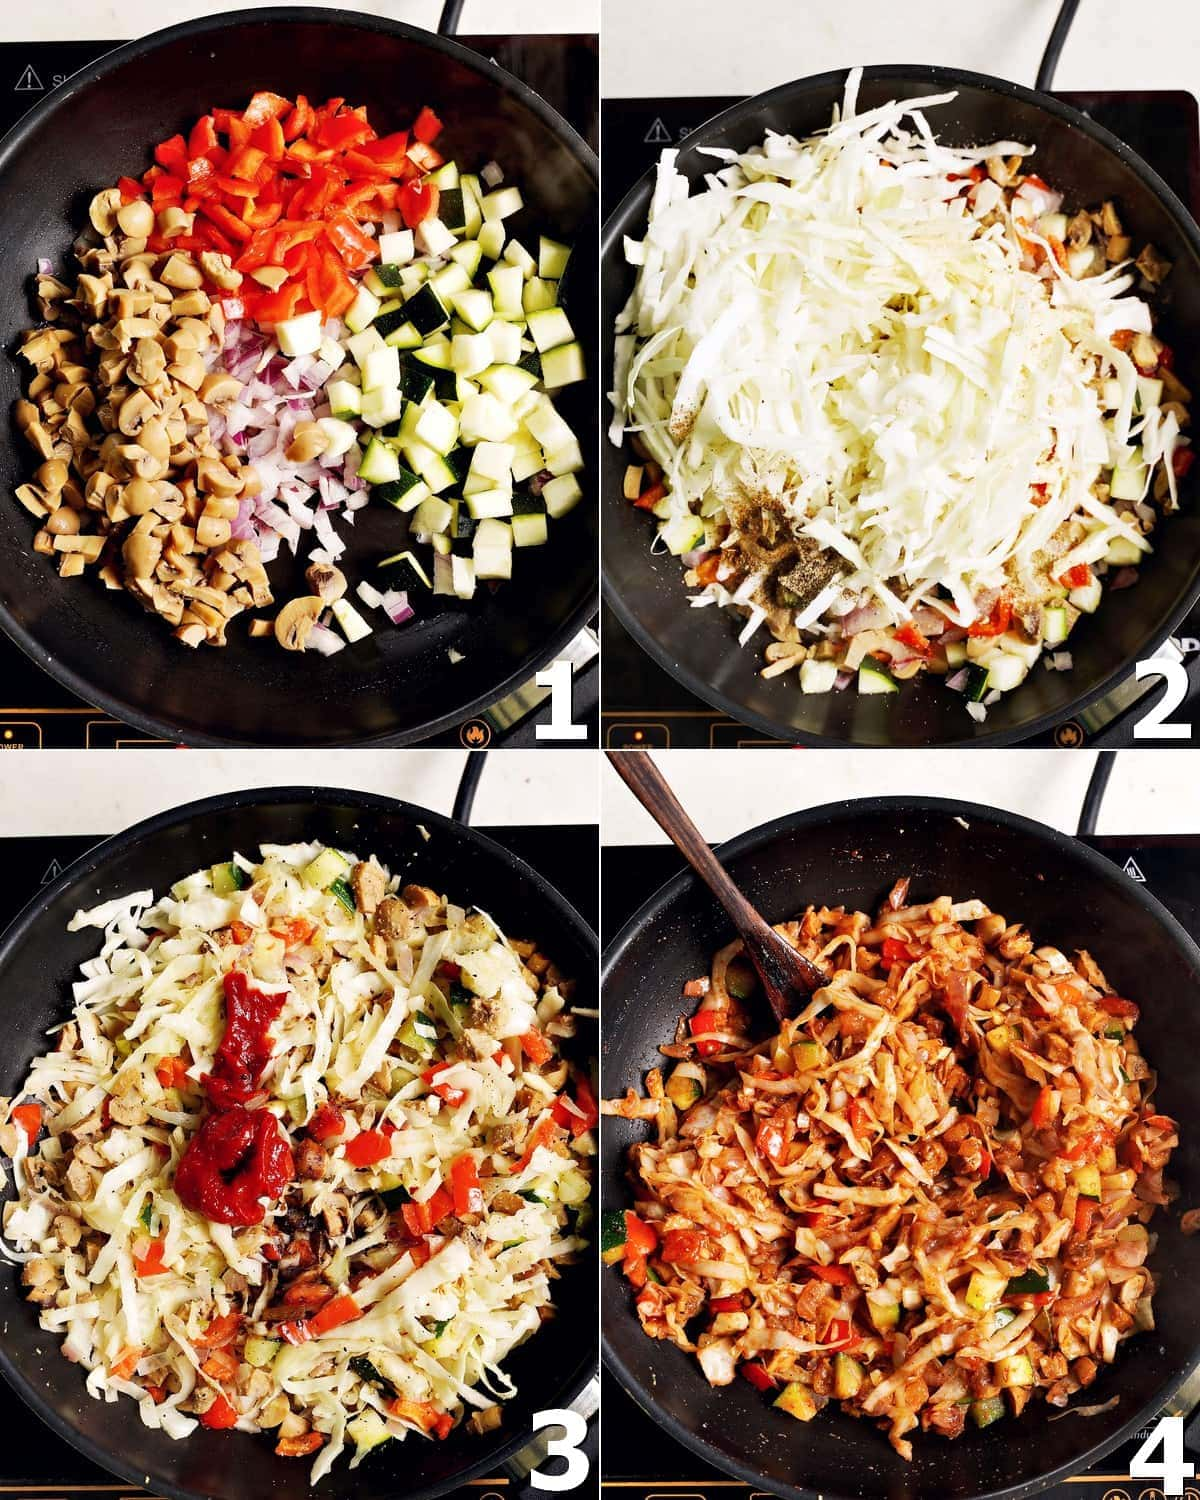 4 step-by-step photos of how to cook the filling in a black skillet